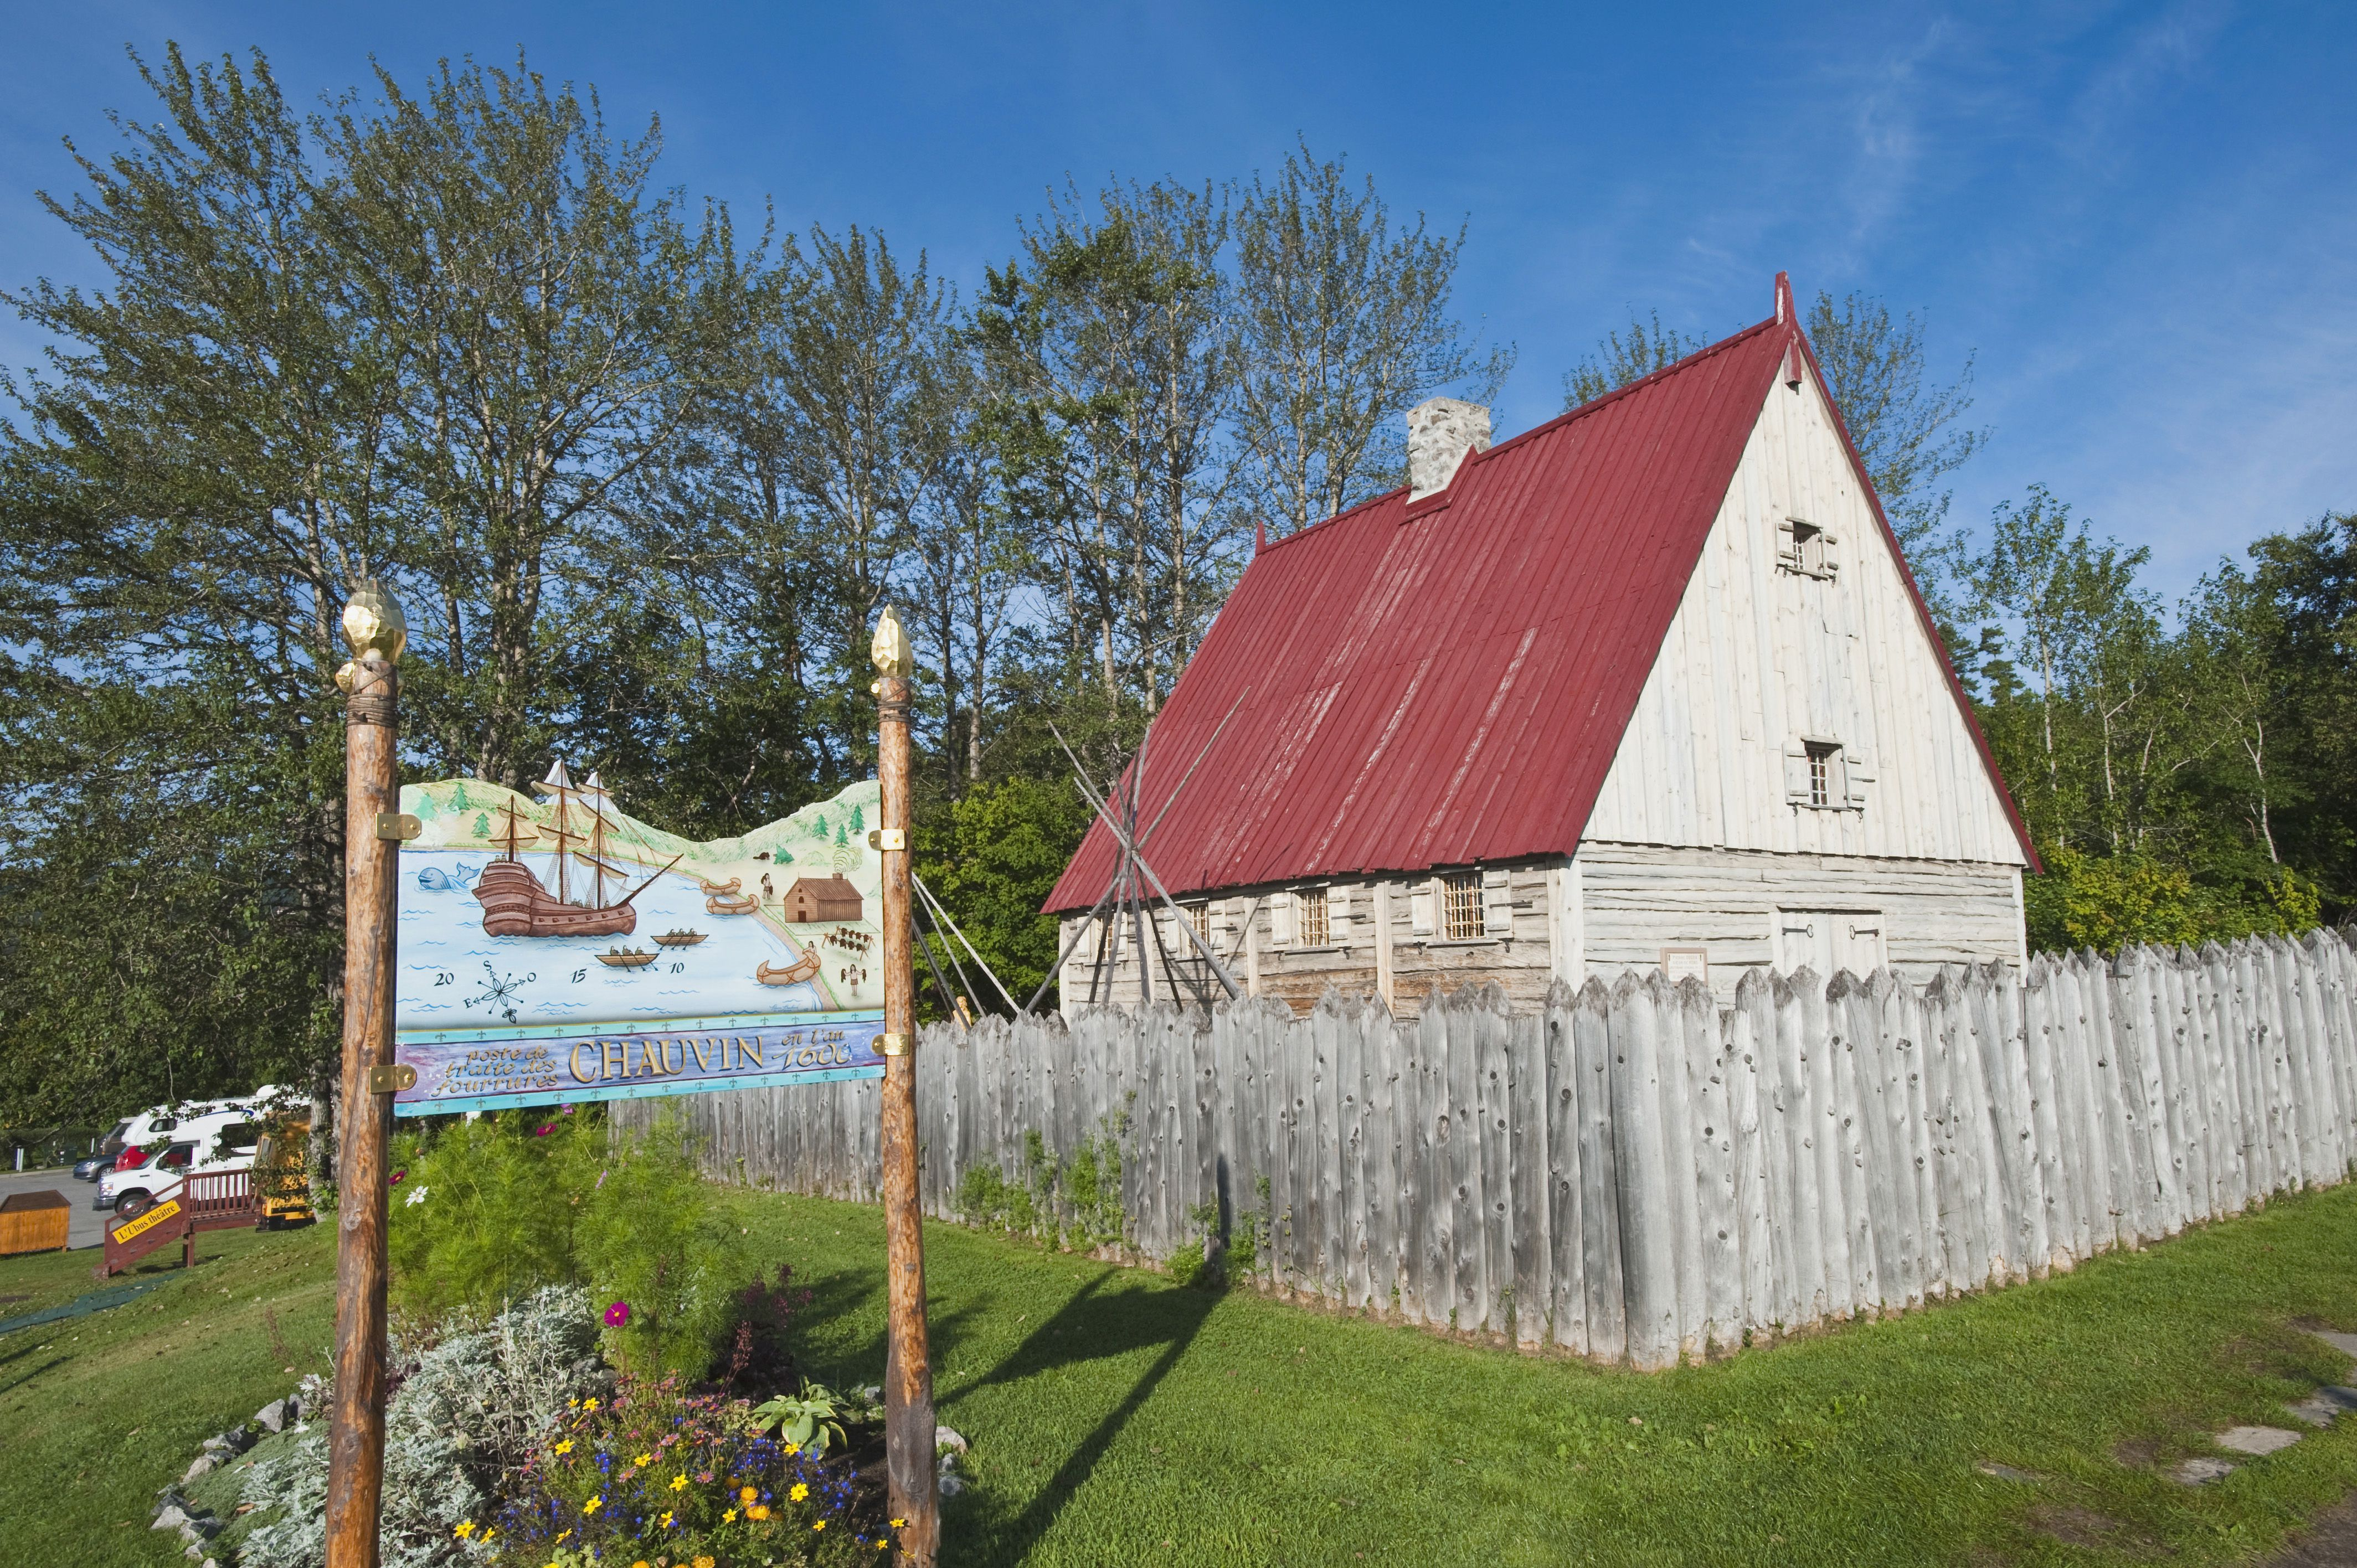 The Chauvin Trading Post, Tadoussac, Quebec, Canada